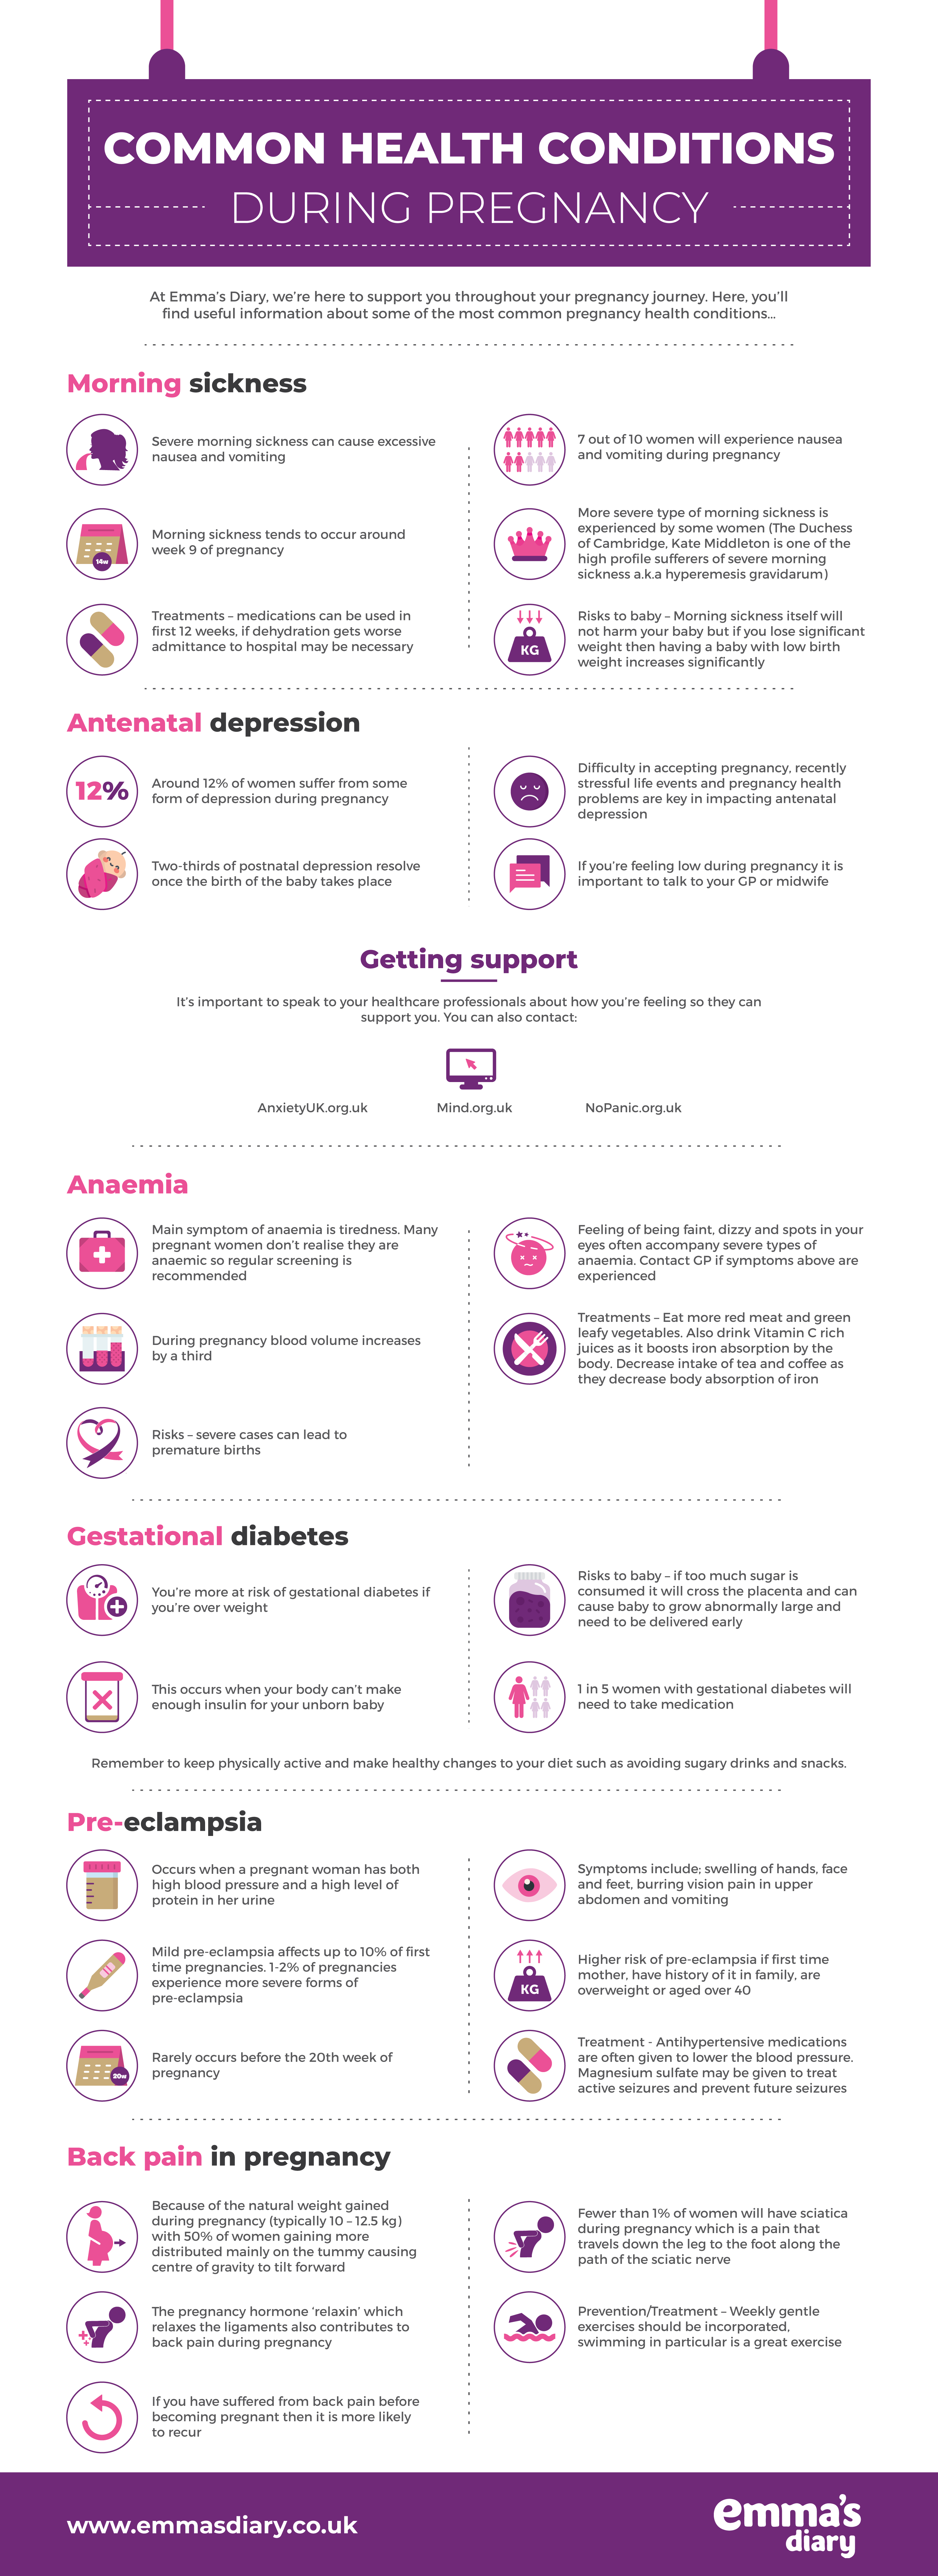 emma's-diary-common-pregnancy-conditions-8-png